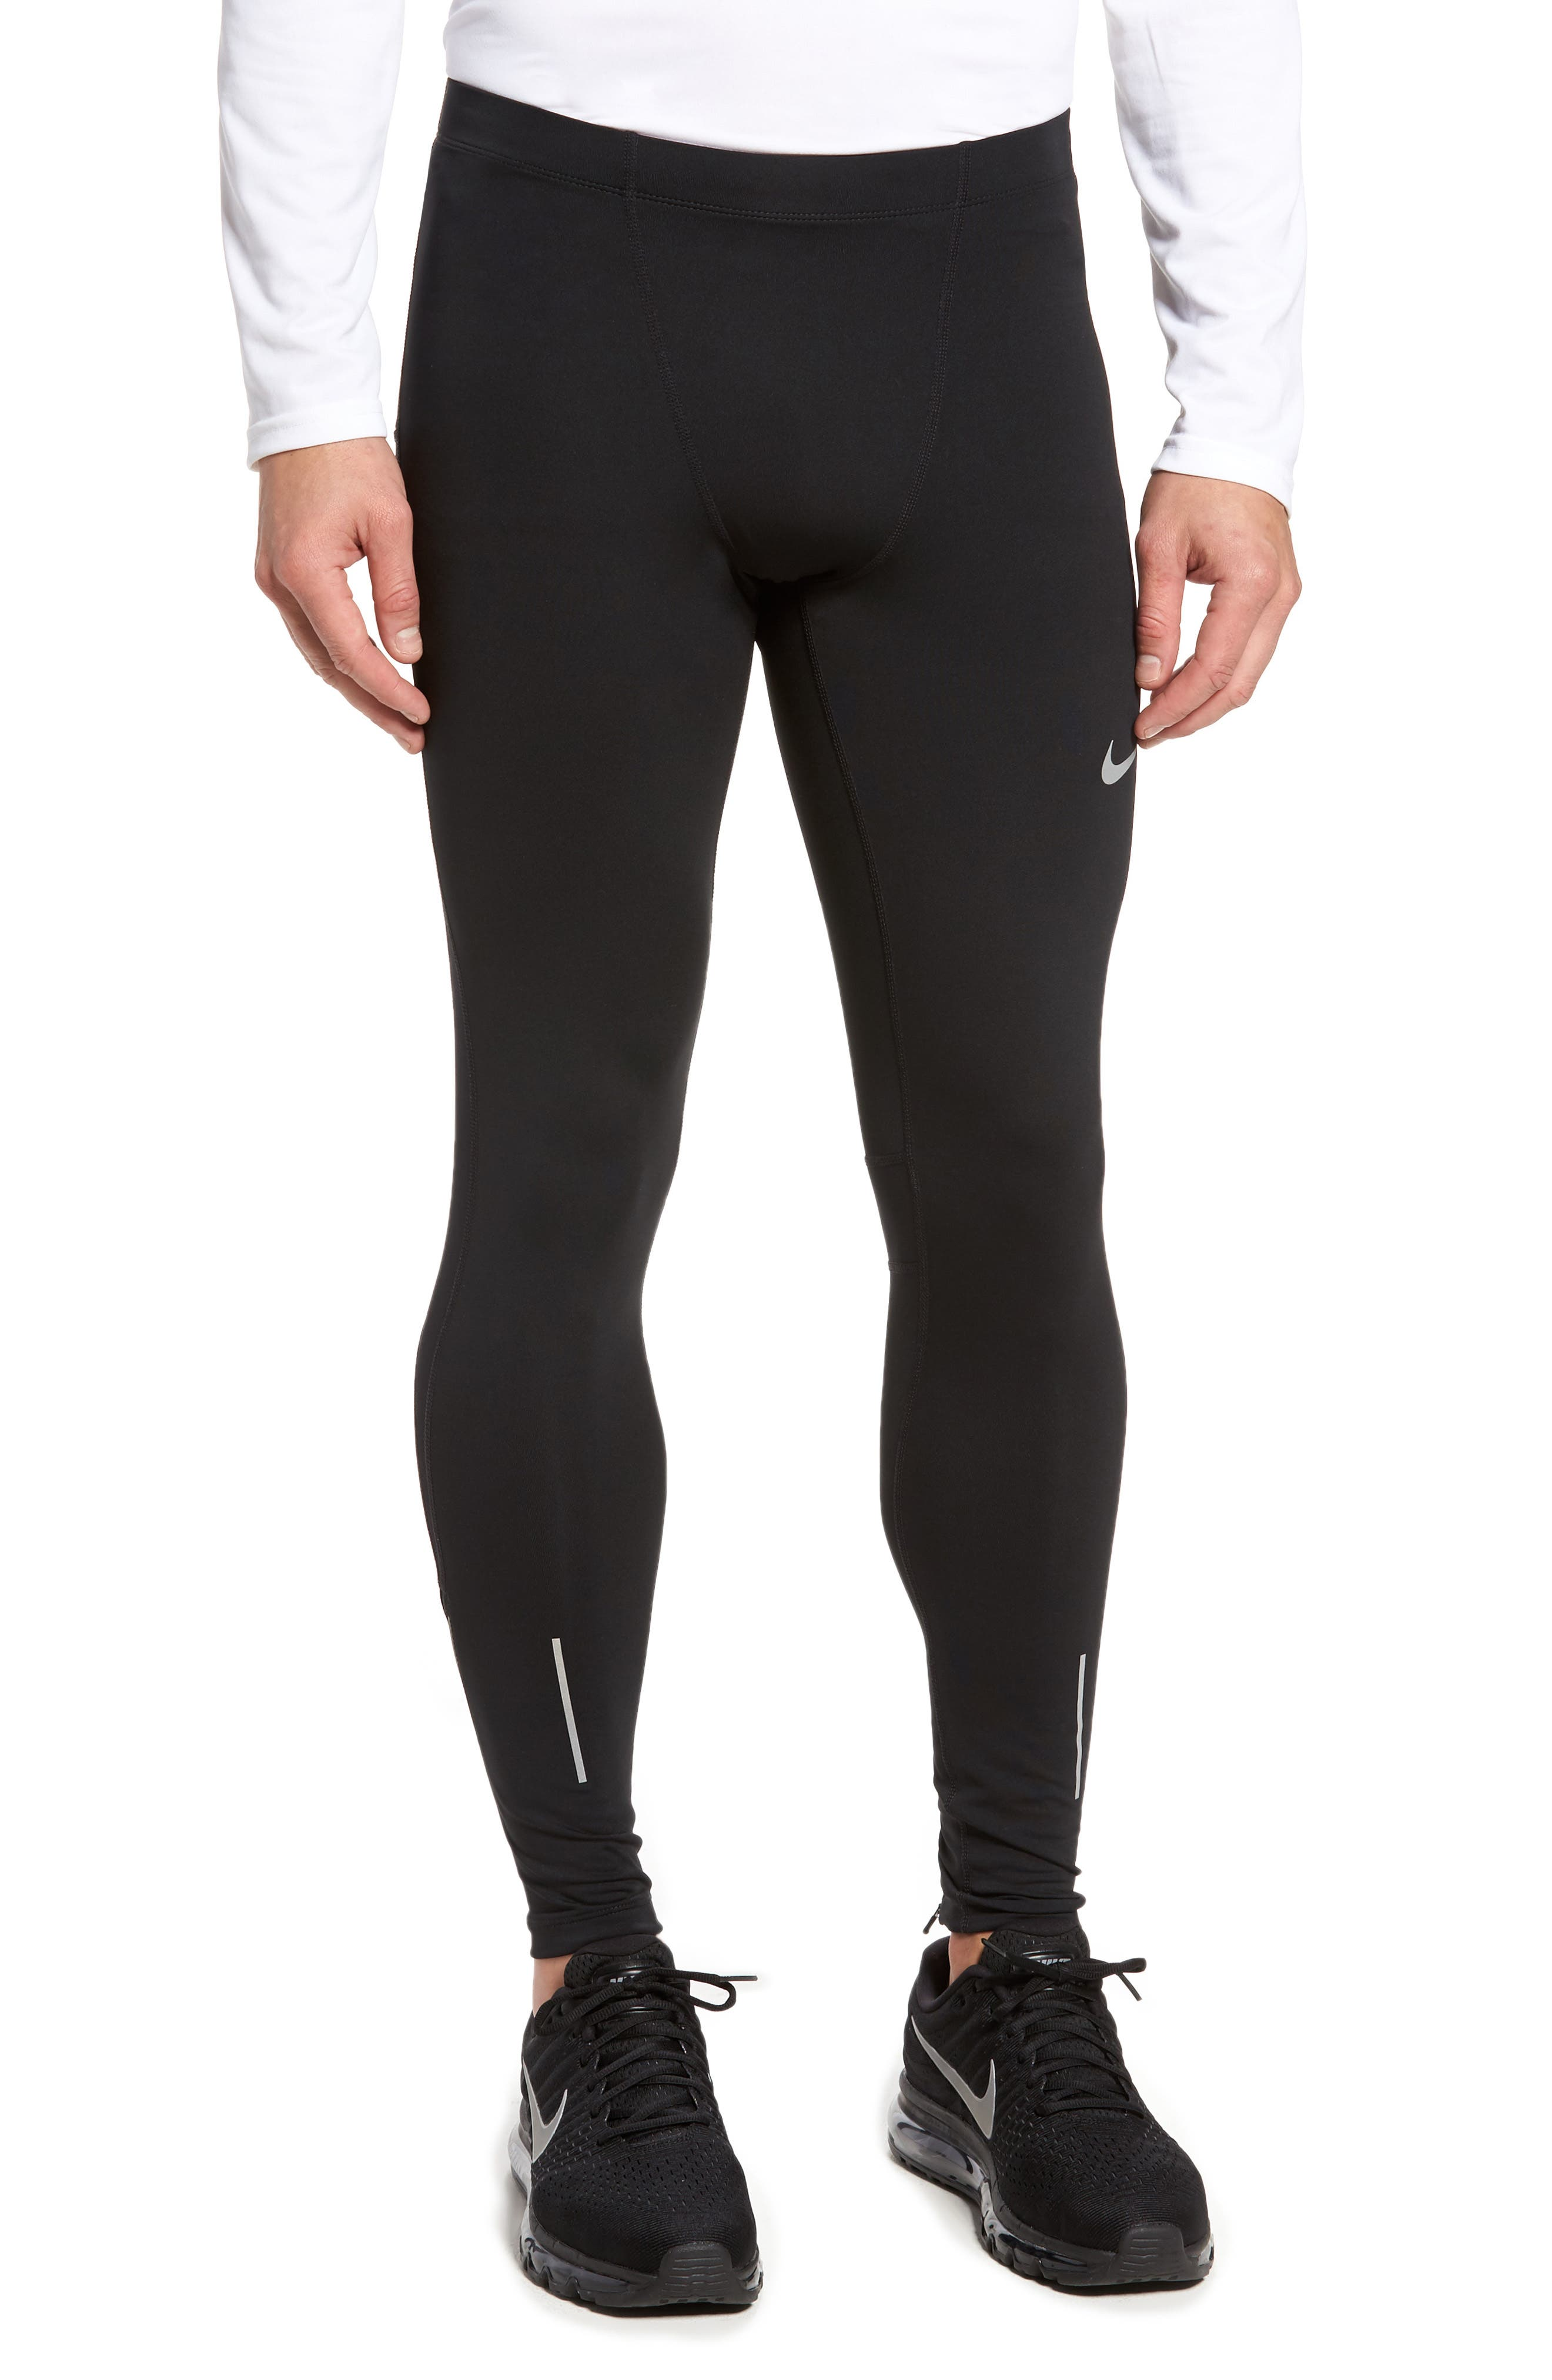 Nike Therma Dry Running Tights